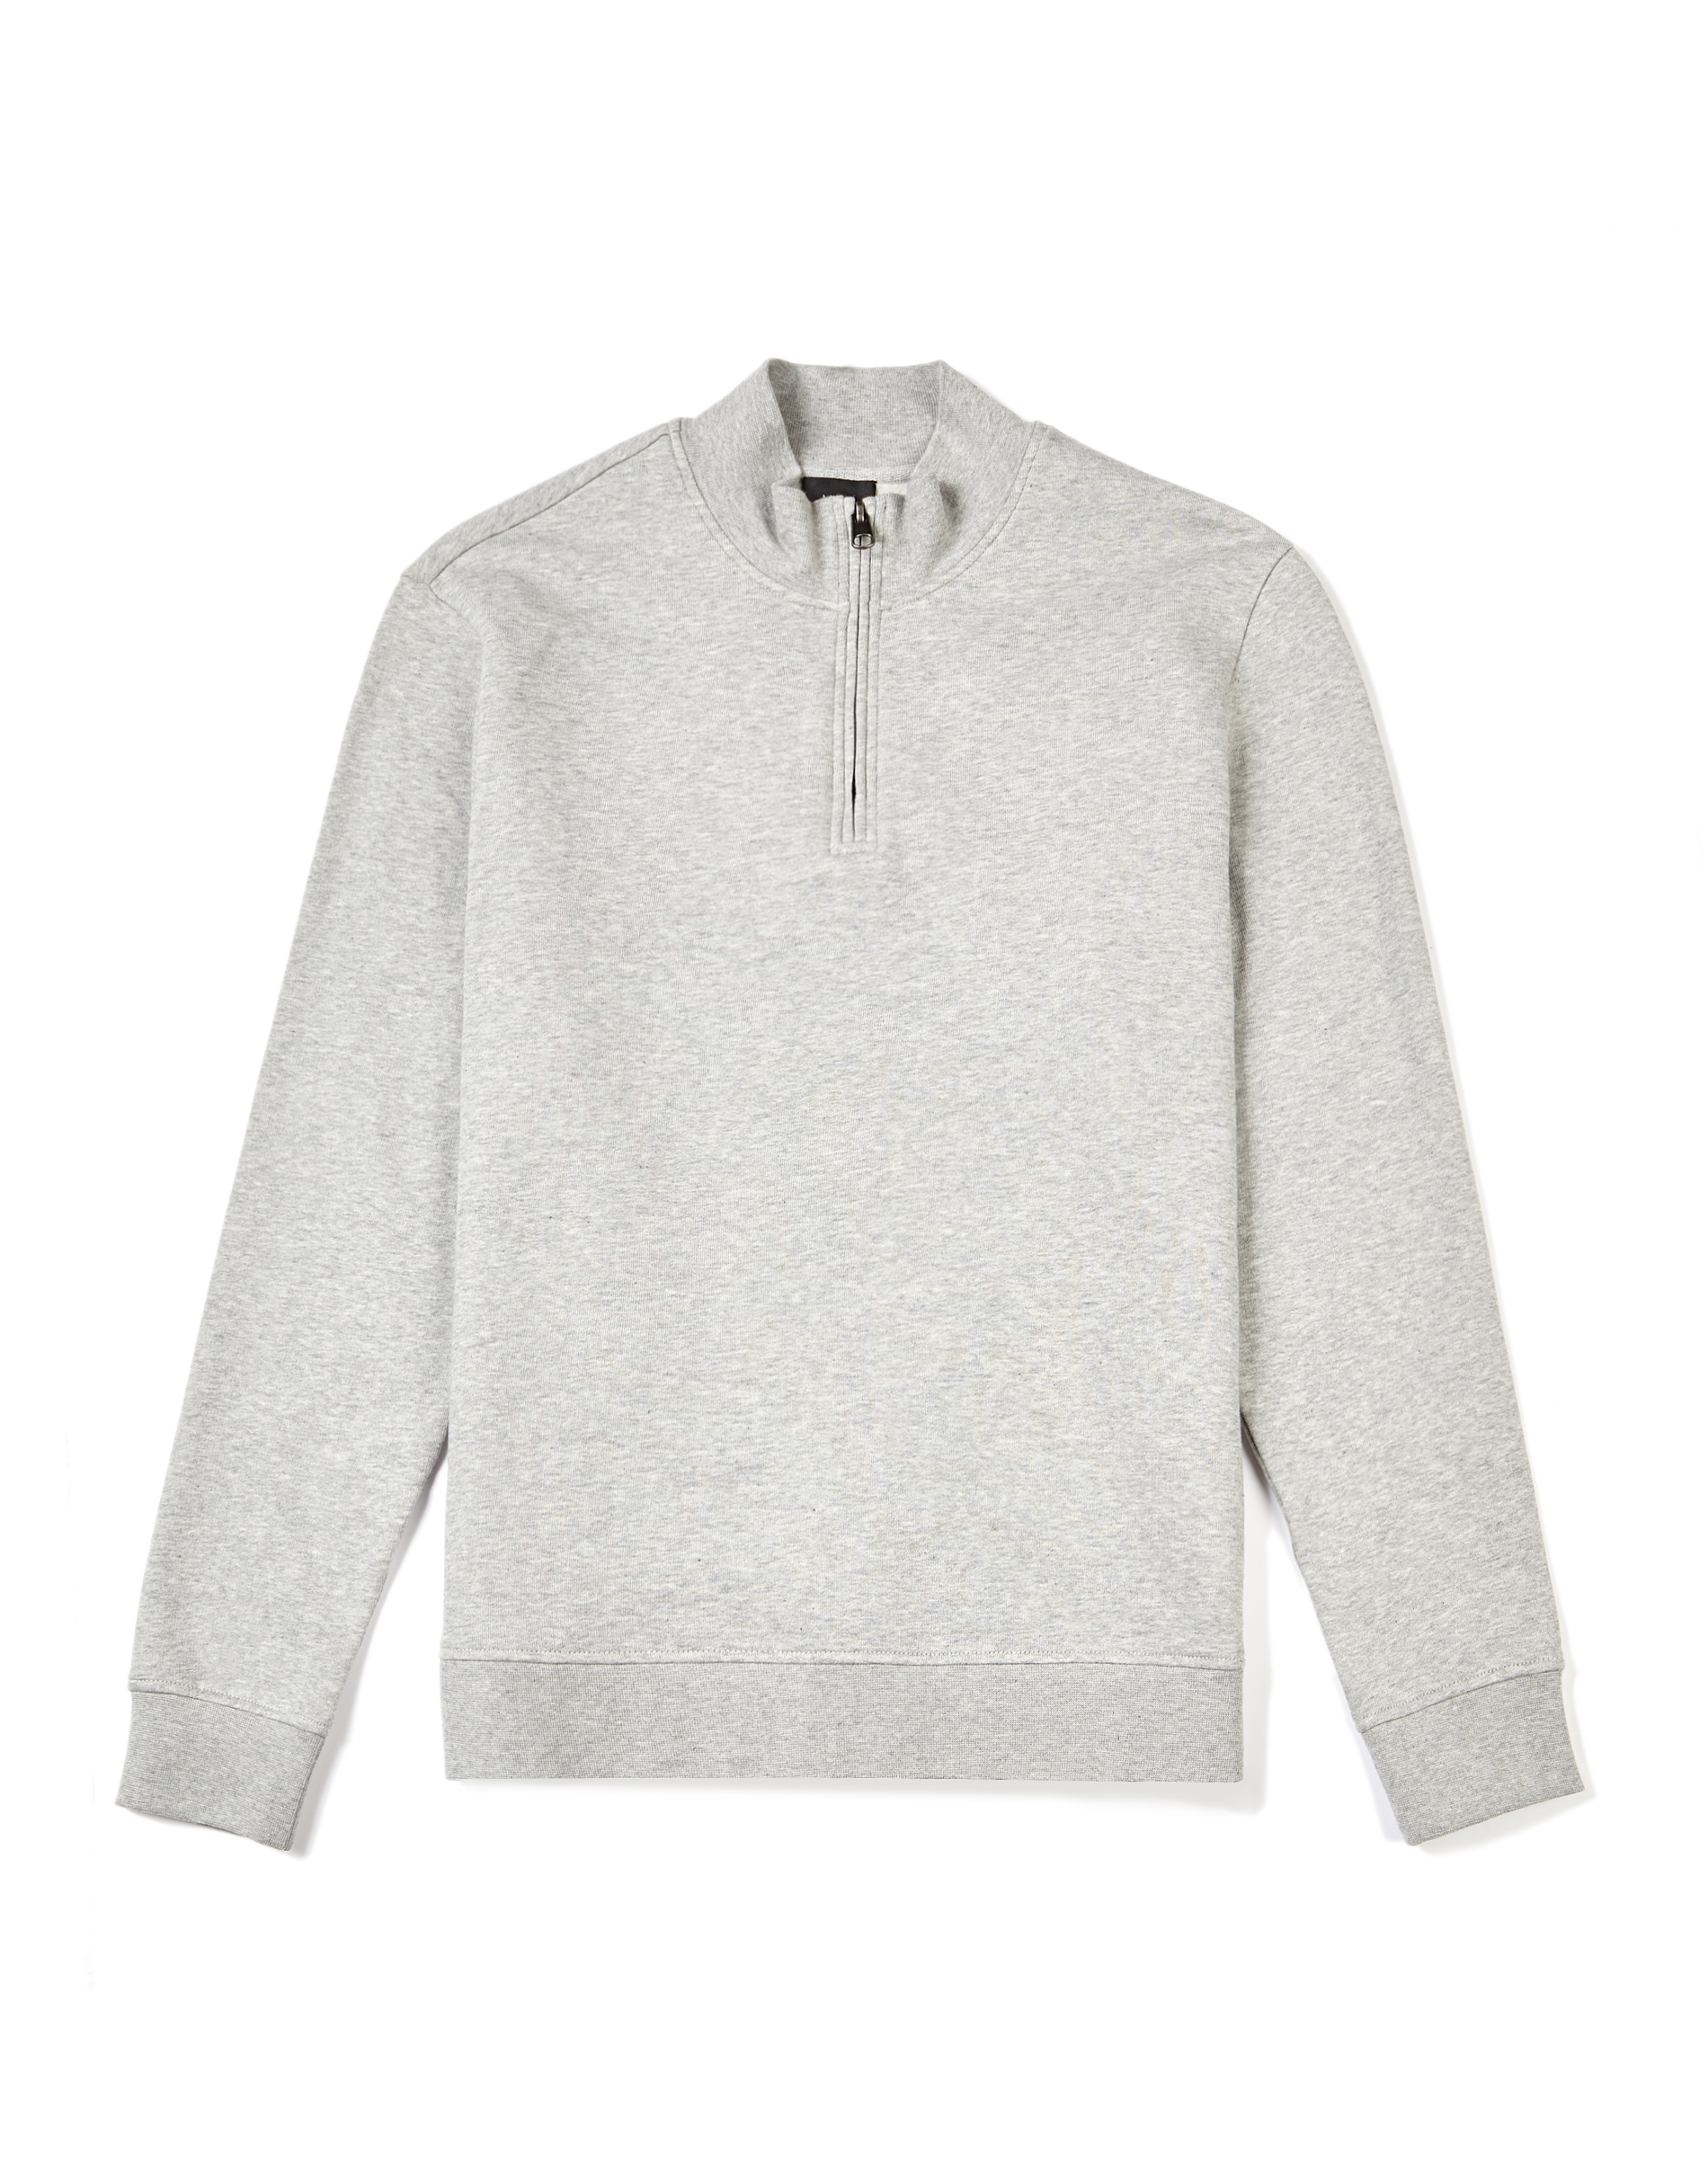 MVP MID GREY MELANGE Vyner Funnel Neck Cotton Sweatshirt